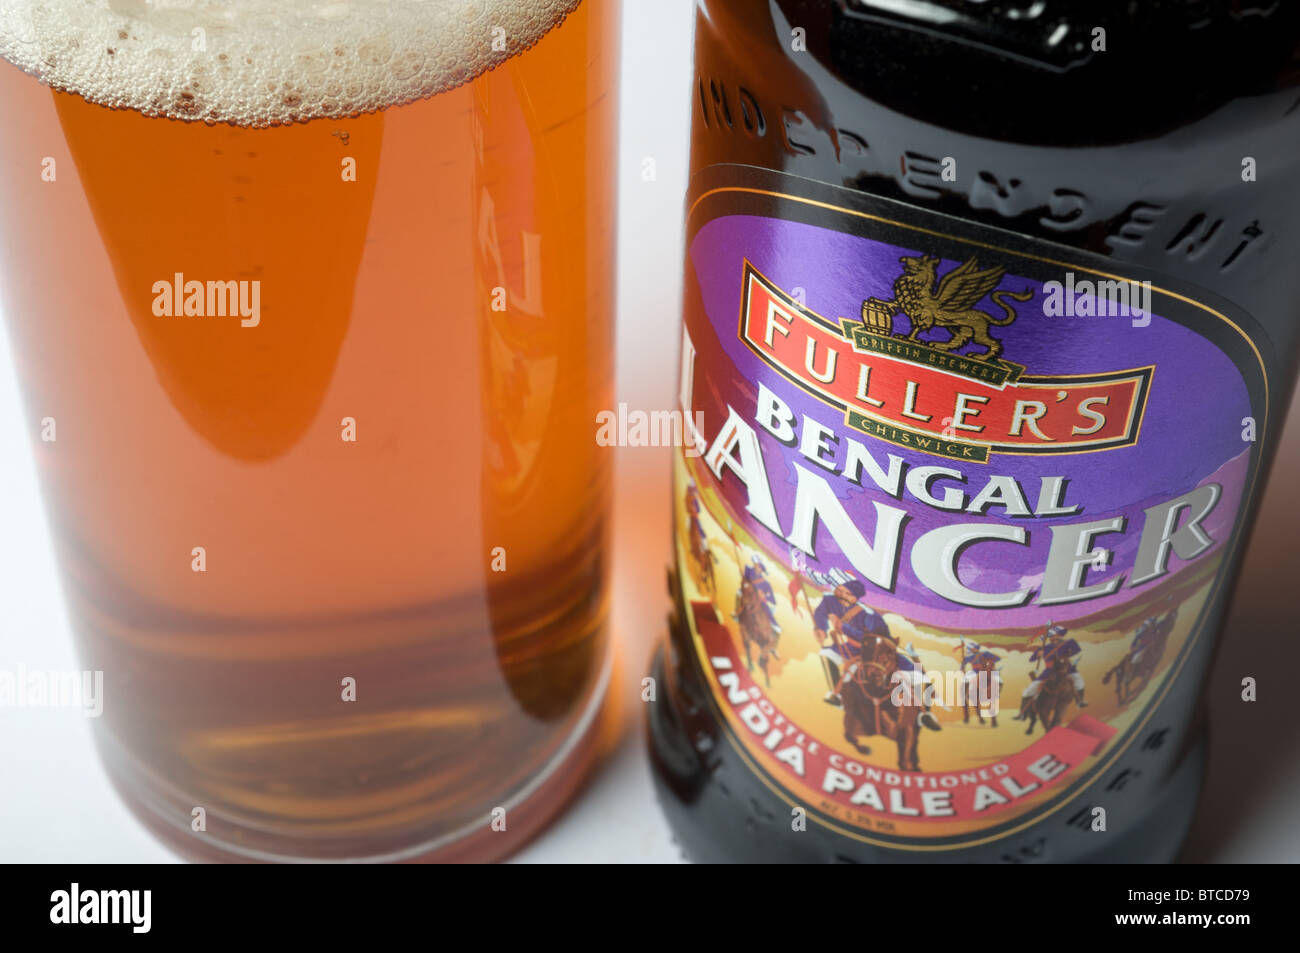 Fuller's Bengal Lancer India pale ale - Stock Image